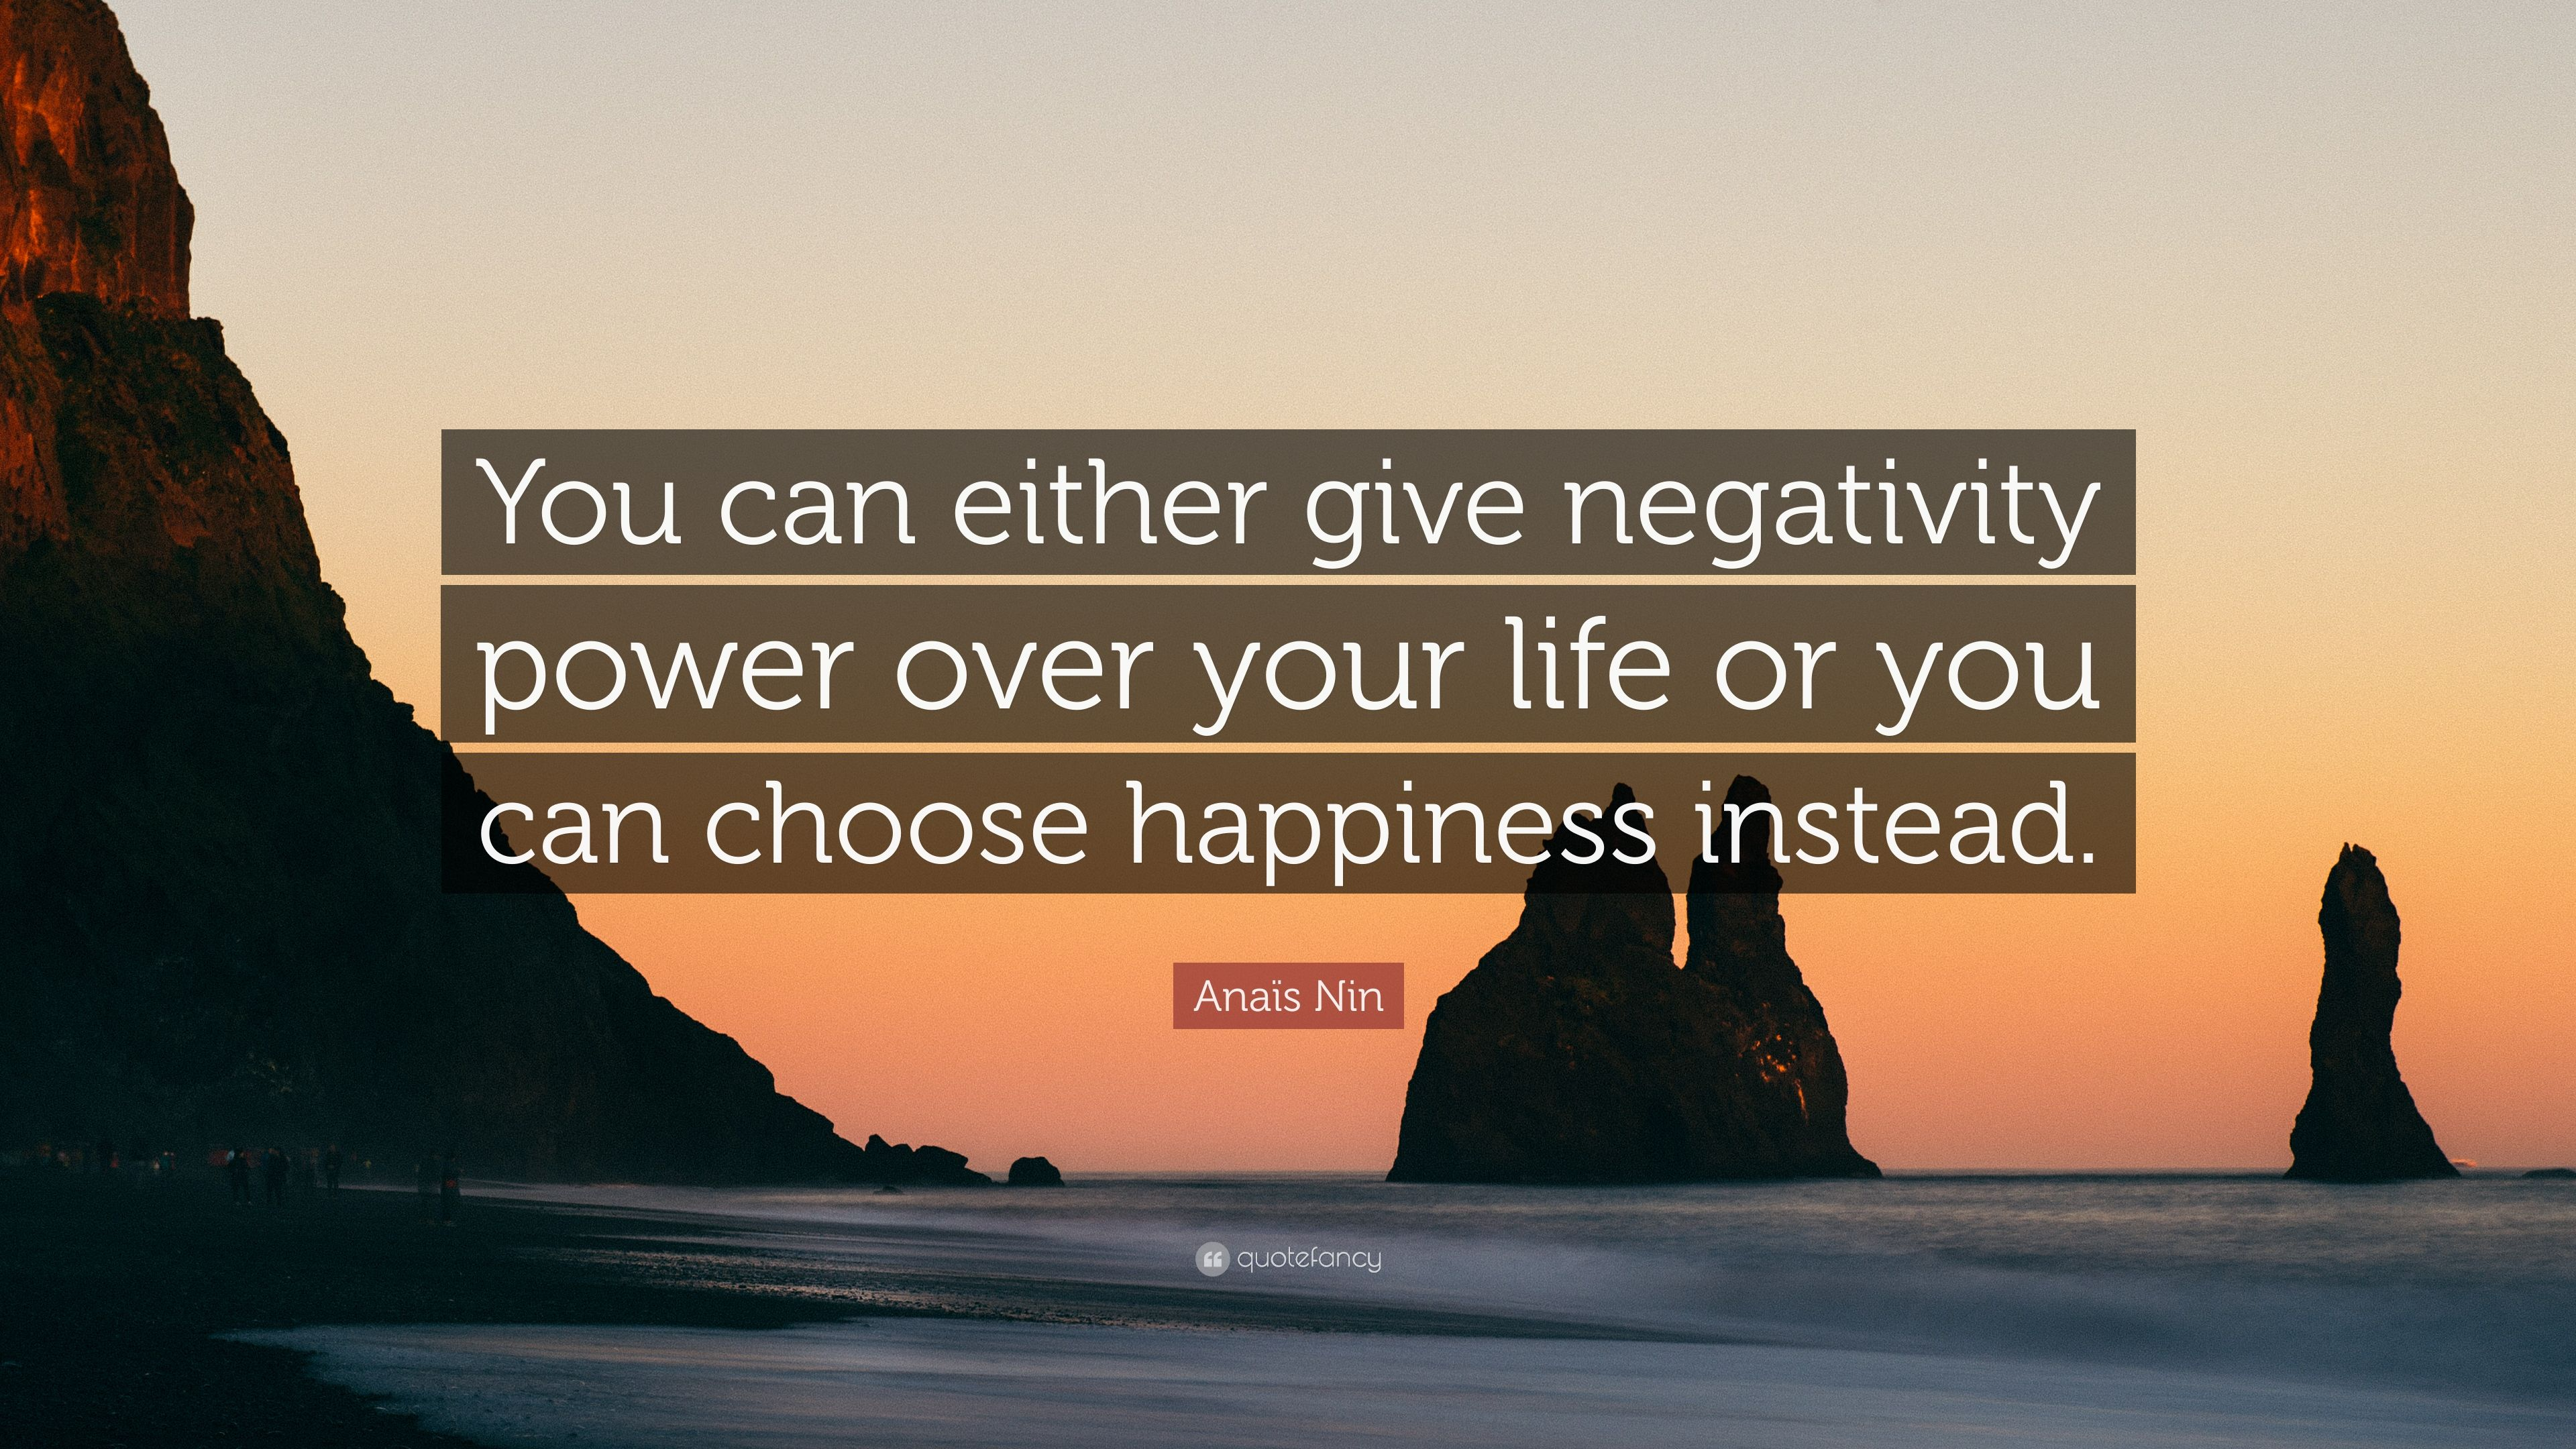 Anaïs Nin Quote: U201cYou Can Either Give Negativity Power Over Your Life Or You